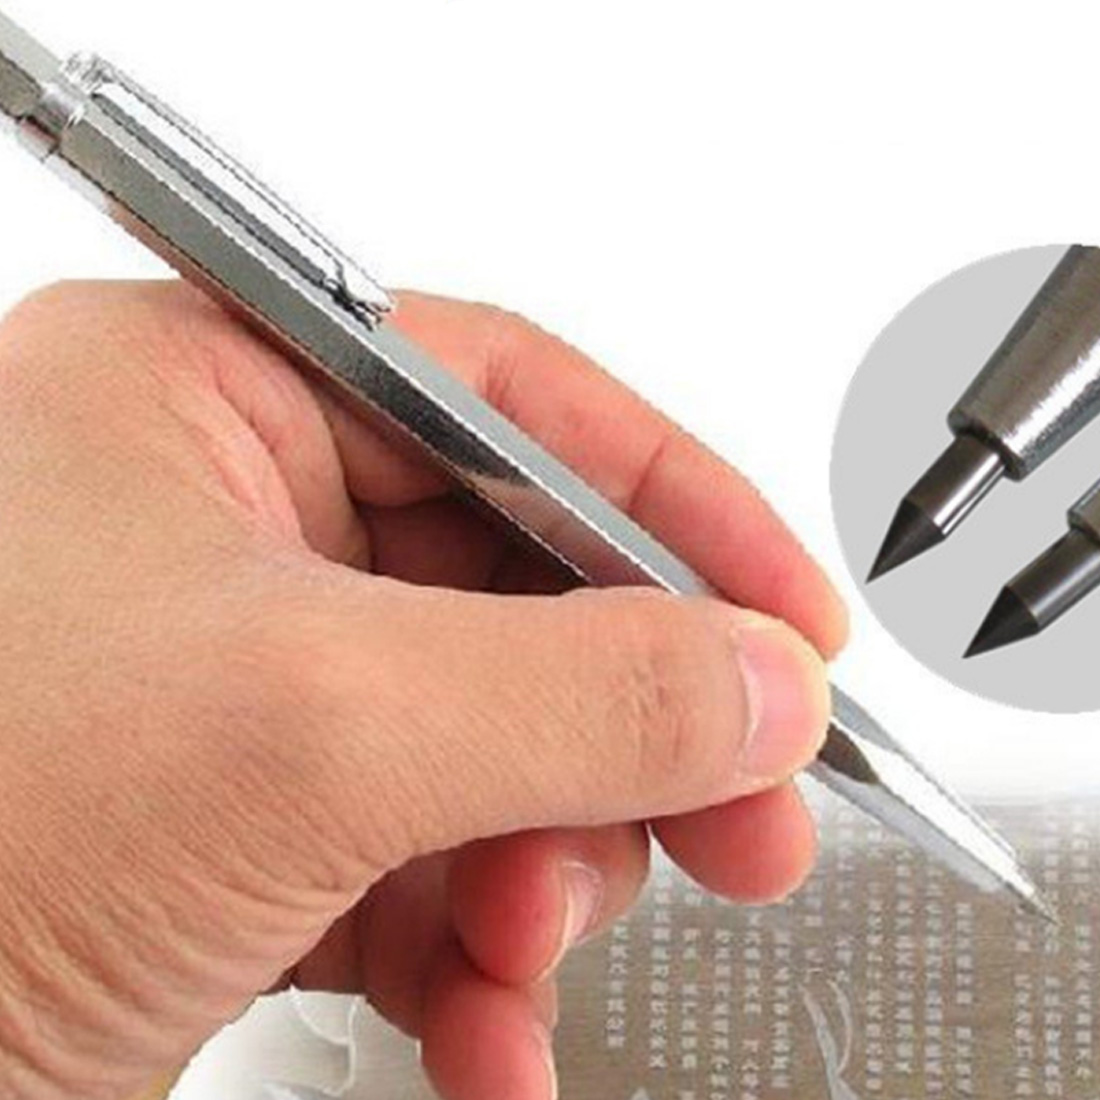 New Arrival Tungsten Carbide Tip Scriber Etching Pen Carve Glass Silicon Quartz Metal Tool